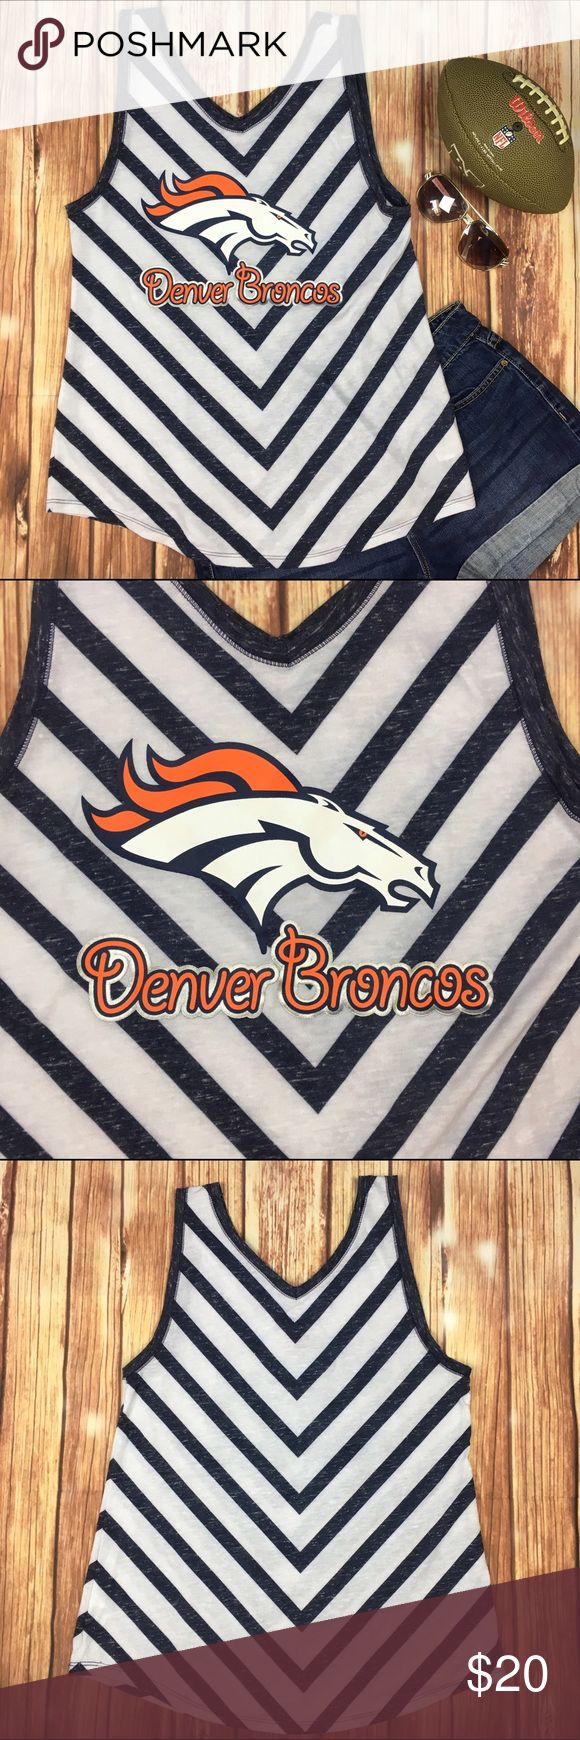 """Denver Broncos Juniors Chevron Print Tank Size: Juniors XL 15/17 Brand: NFL Teen Apparel  Condition: Excellent, pre-owned  White & navy blue chevron print tank top. Large bronco head & team name printed on front. No cracking of print.   Juniors size XL (15/17), could also fit women's small. Check measurements for sure fit.   Fabric: 88% Polyester, 12% Cotton Measurements:  17"""" bust from underarm to underarm 27"""" length from shoulder to hem 2"""" strap width NFL Apparel Tops Tank Tops"""